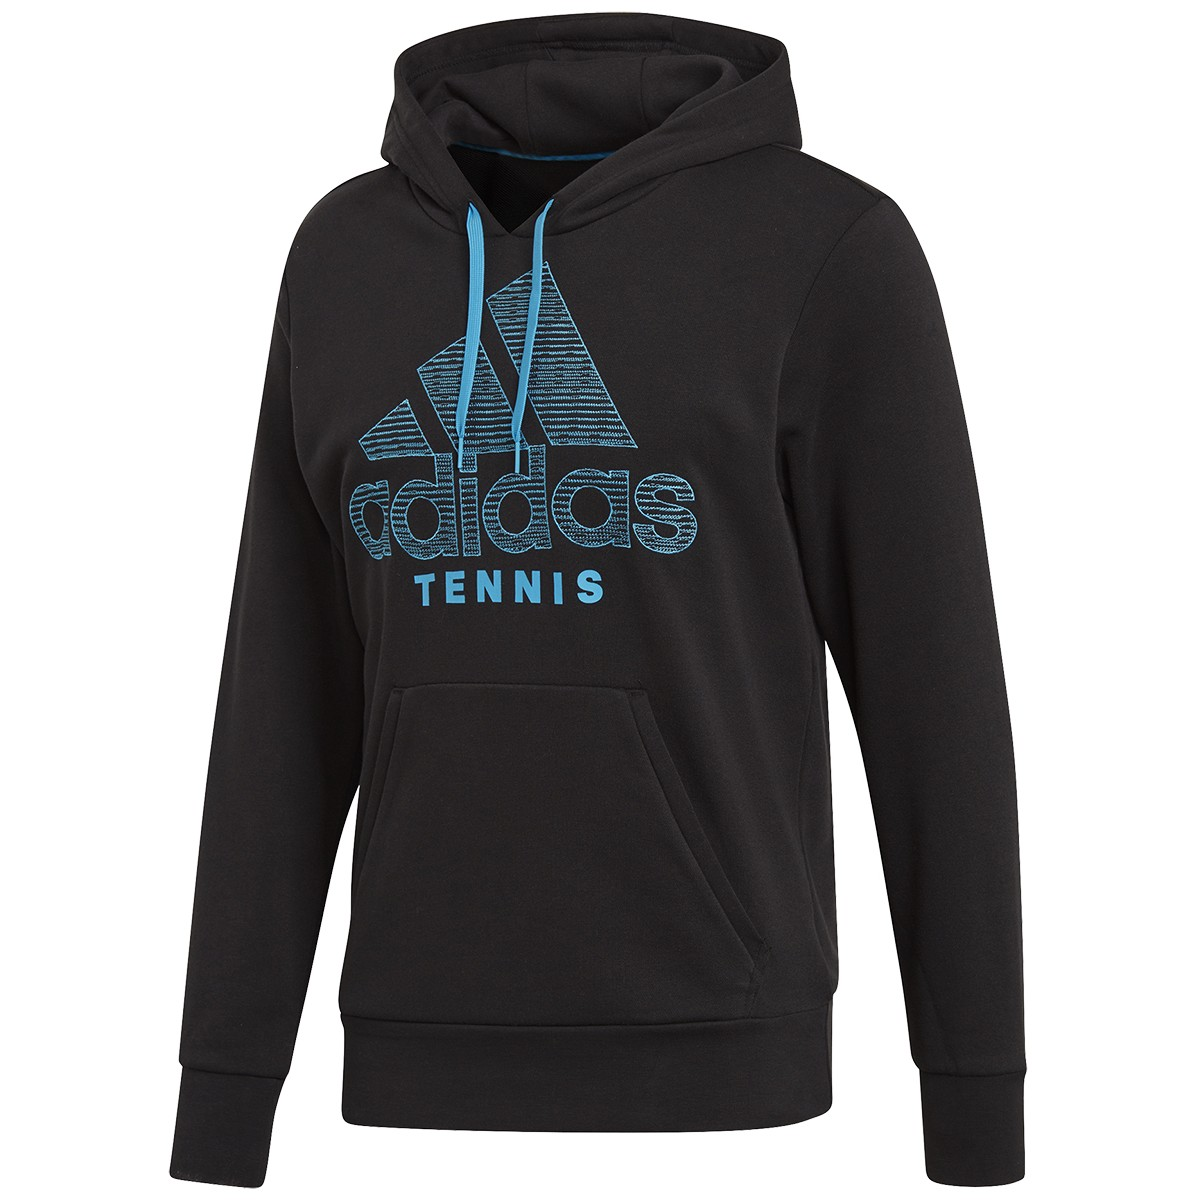 FELPA ADIDAS CATEGORY TENNIS GRAPHIC ADIDAS Uomo